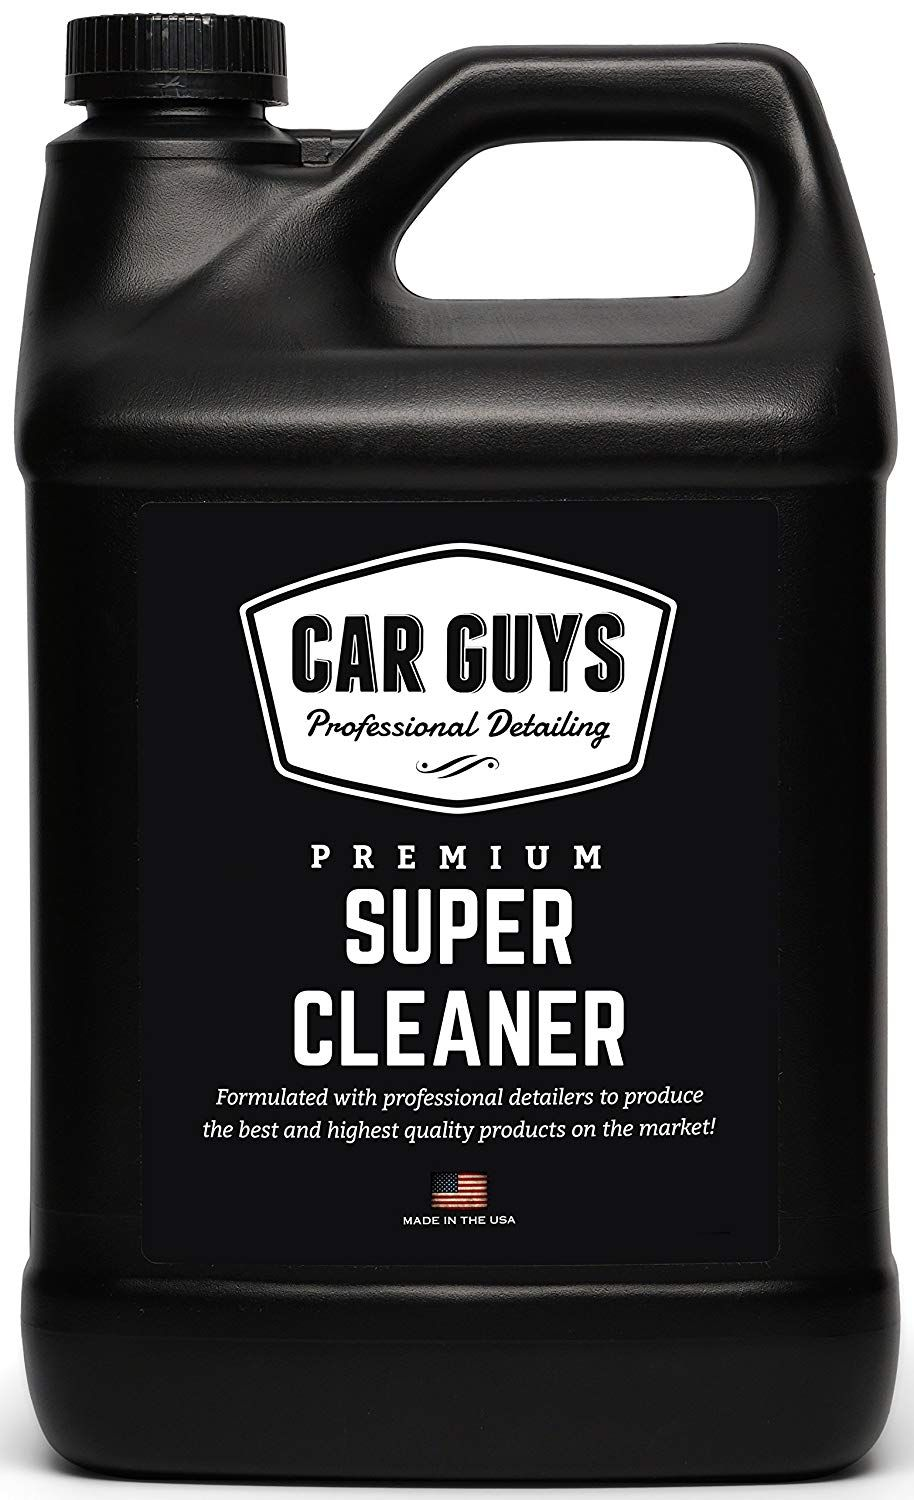 Bestebuys Hot Deals In Automotive Parts And Accessories 38 22 Carguys Super Cleaner The Most Effective All Purpose Hand Car Wash Tire Shine Tire Shine Spray